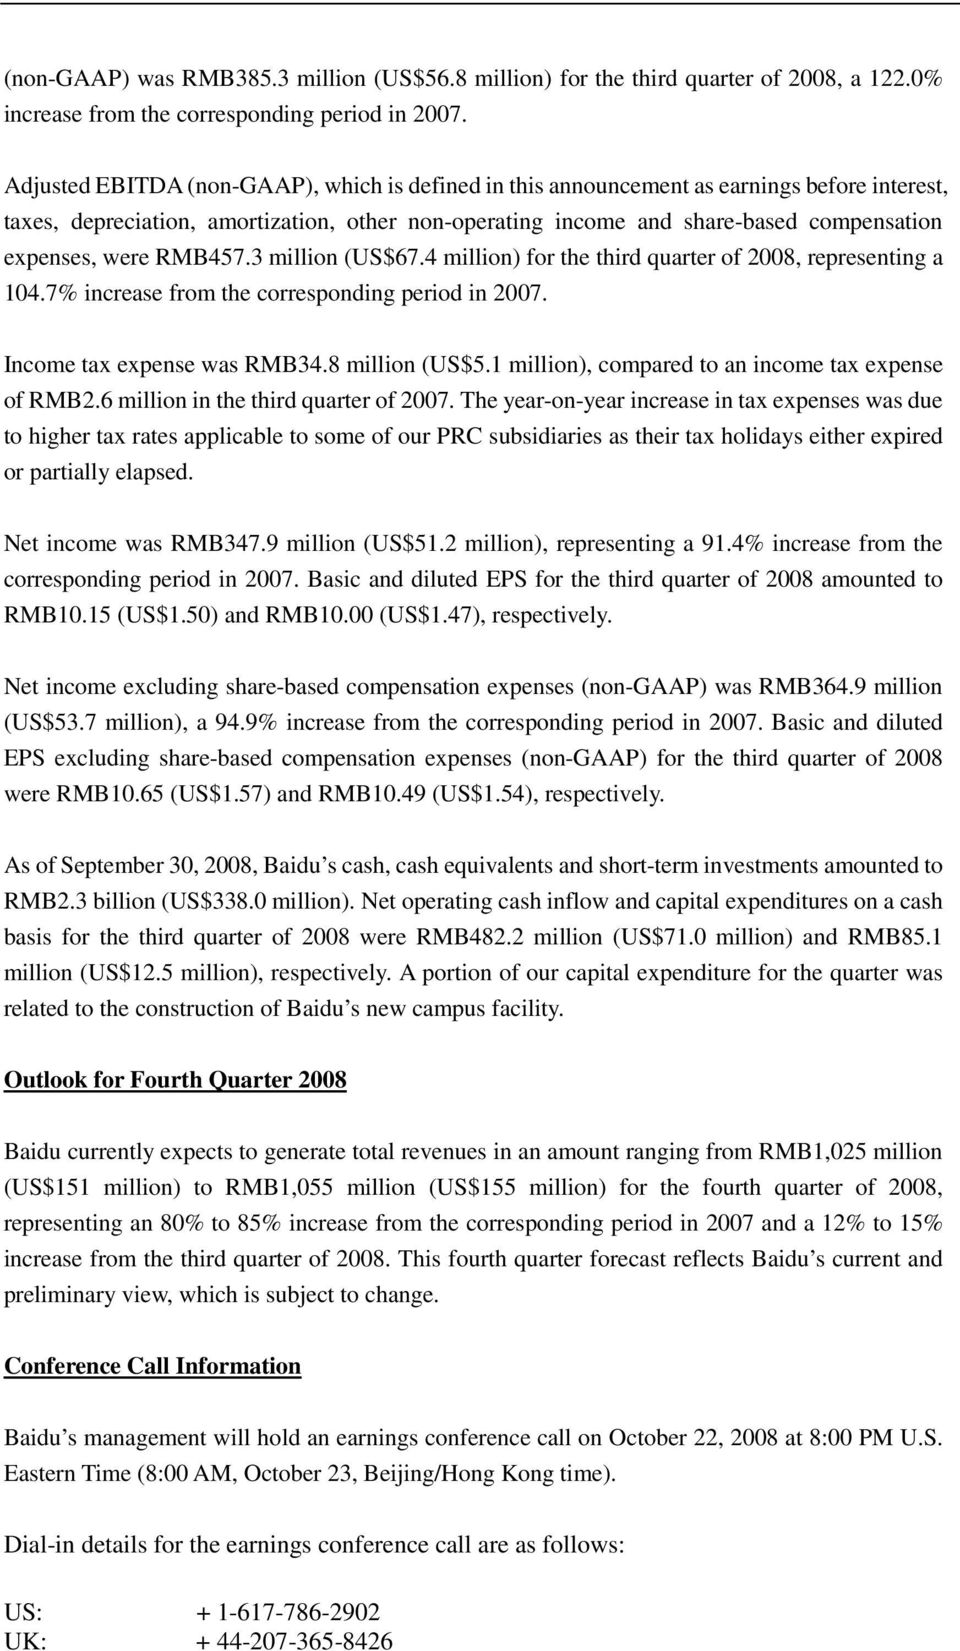 were RMB457.3 million (US$67.4 million) for the third quarter of 2008, representing a 104.7% increase from the corresponding period in 2007. Income tax expense was RMB34.8 million (US$5.